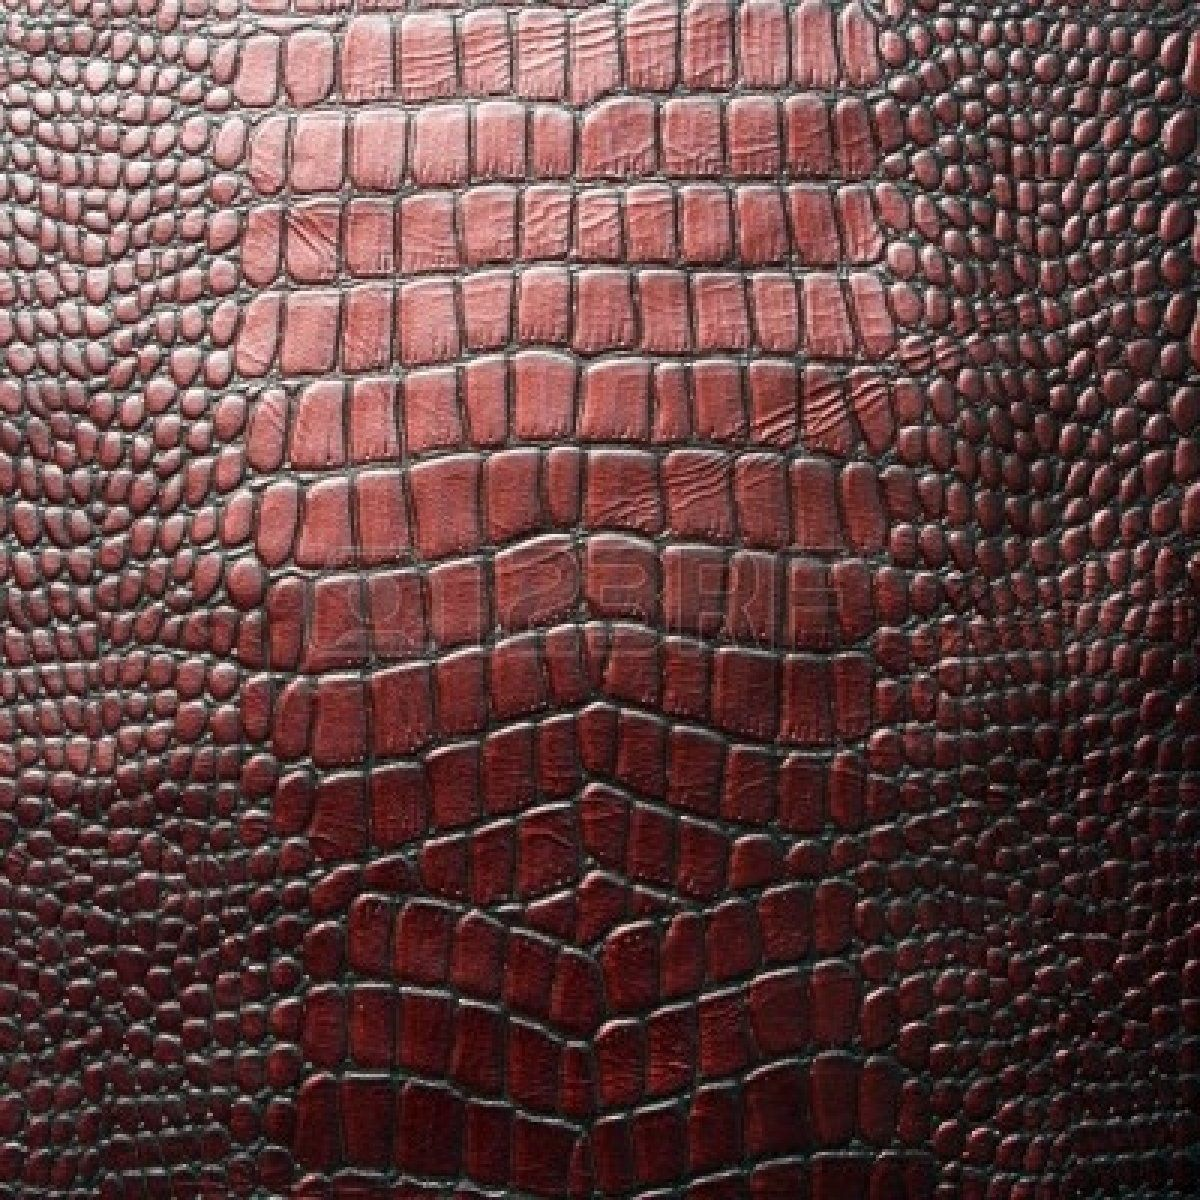 Crocodile leather texture | animal skins | Pinterest ...